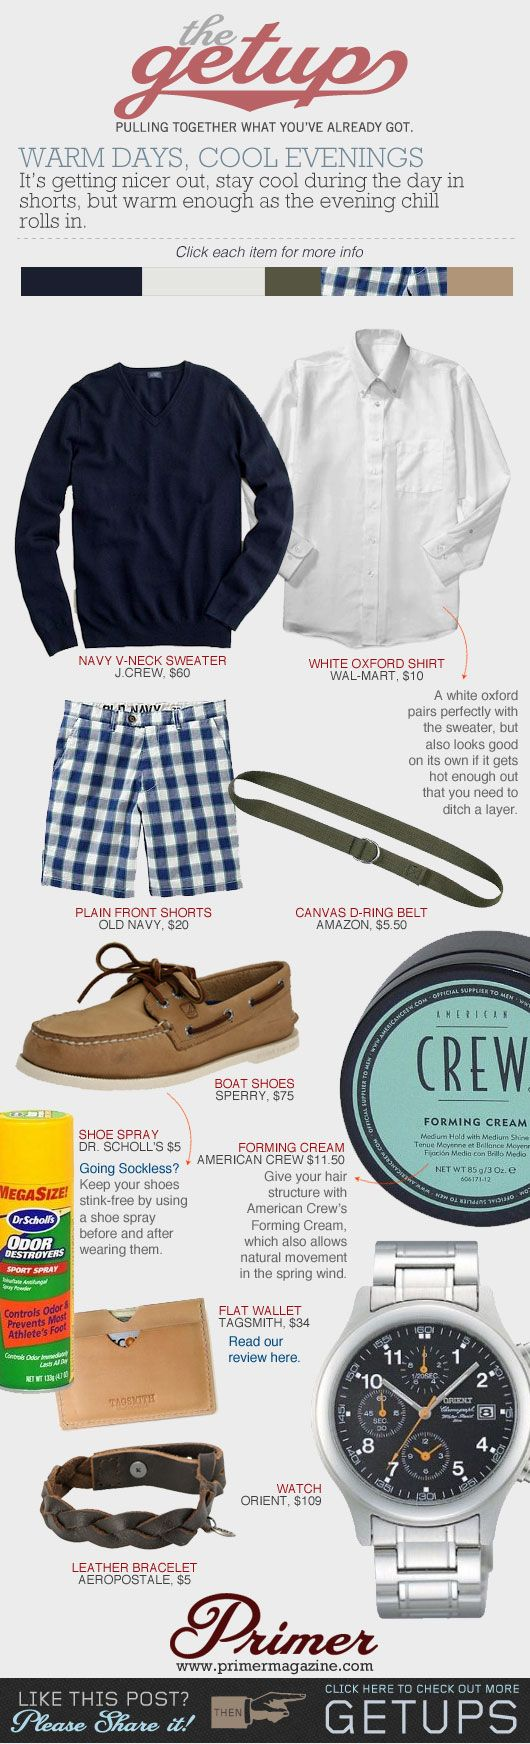 The Getup: Warm Days, Cool Evenings | Primer (cute chequered shorts and weaved bracelet)